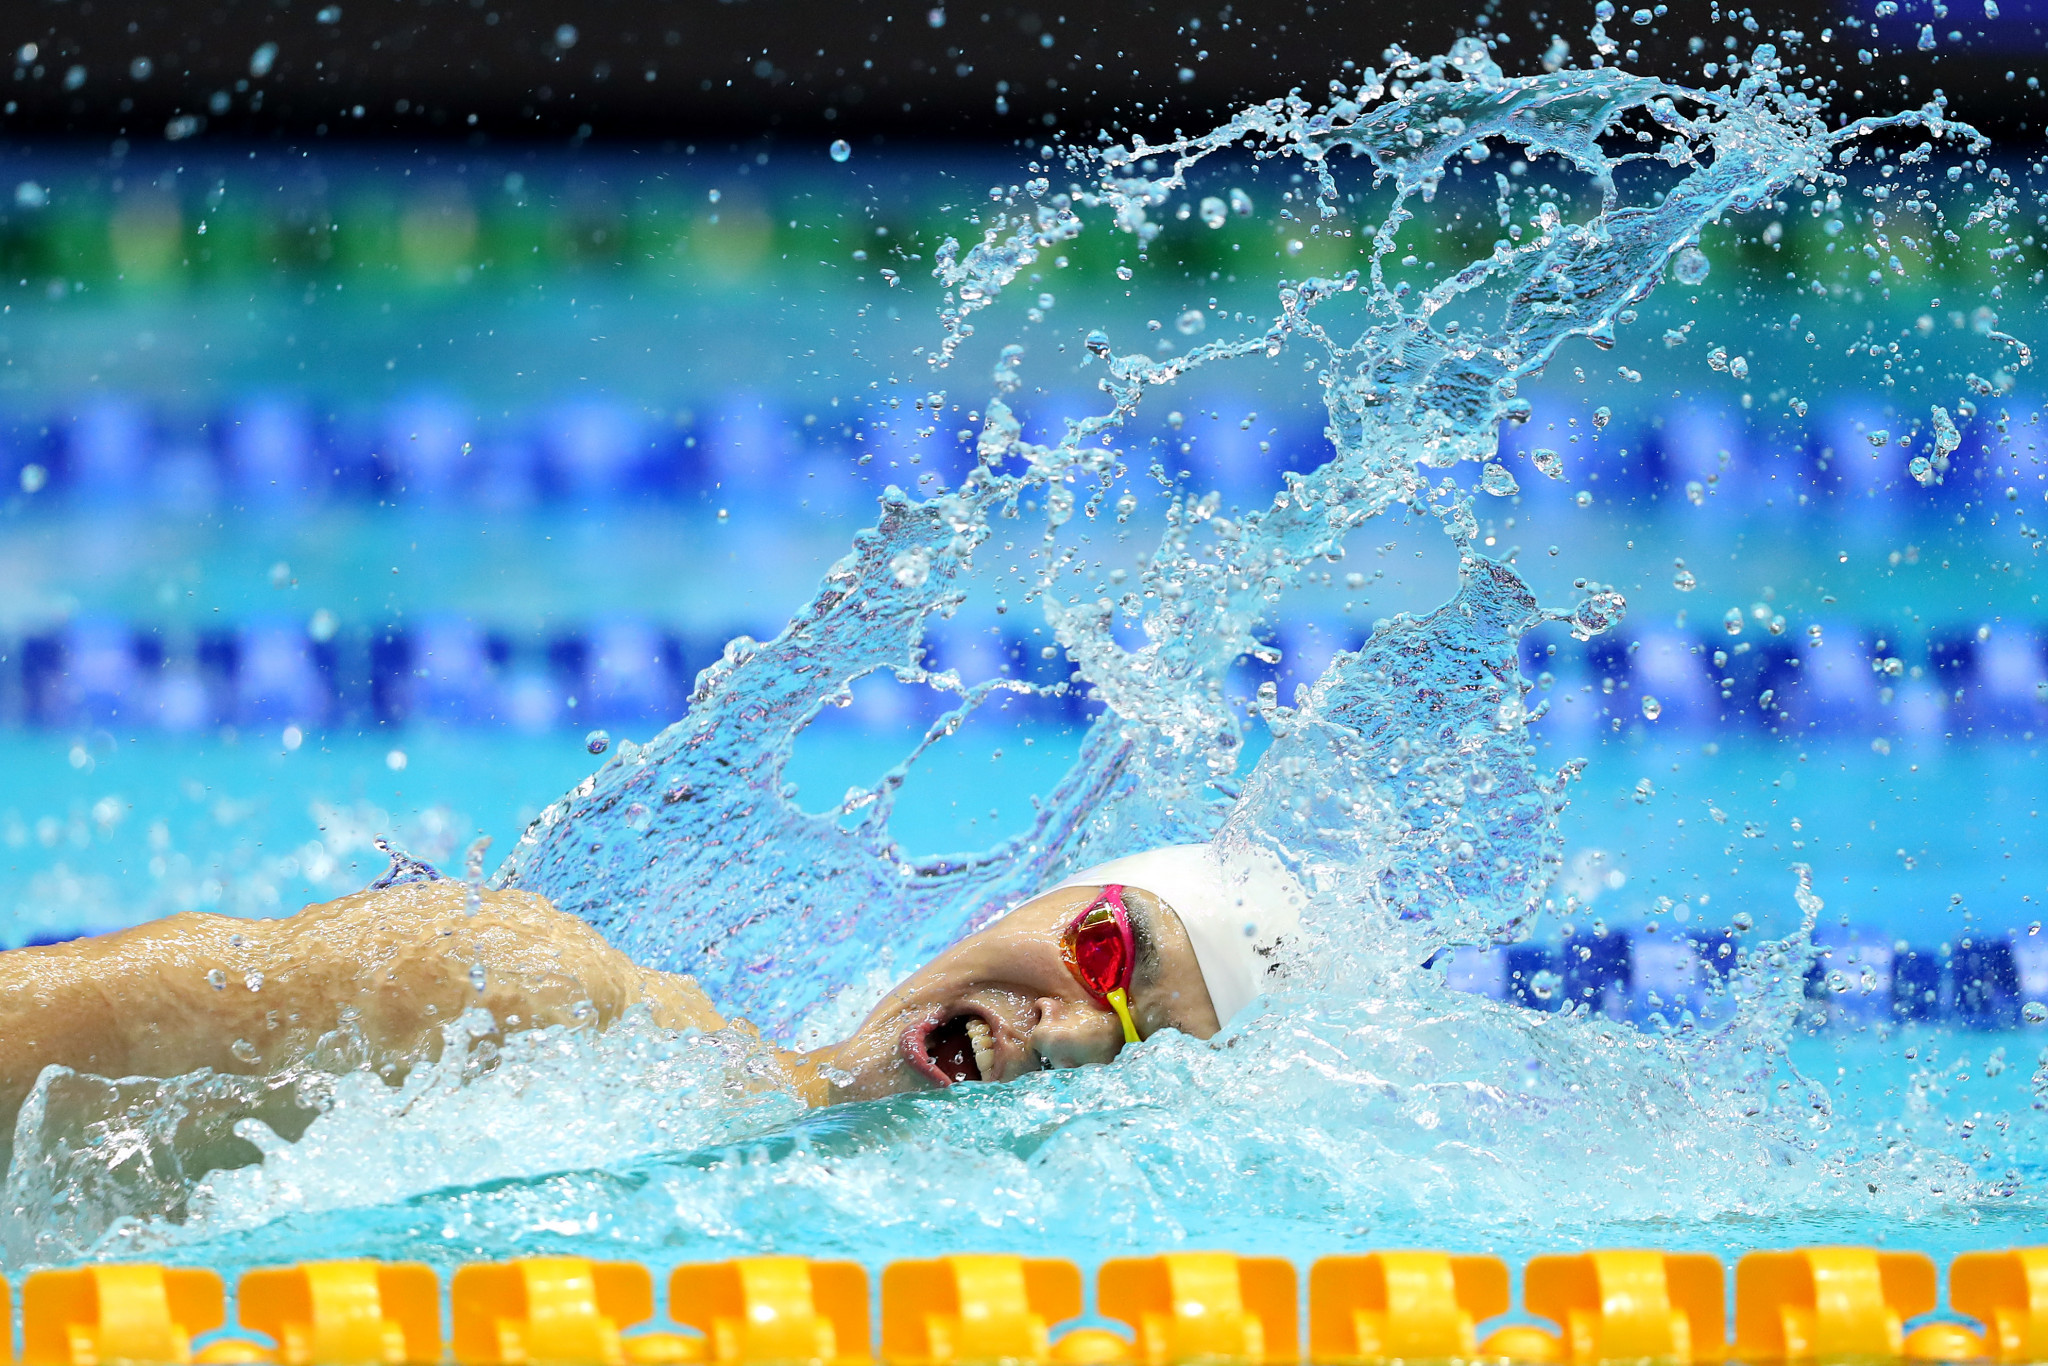 Sun Yang confident of Tokyo 2020 success despite doping controversy